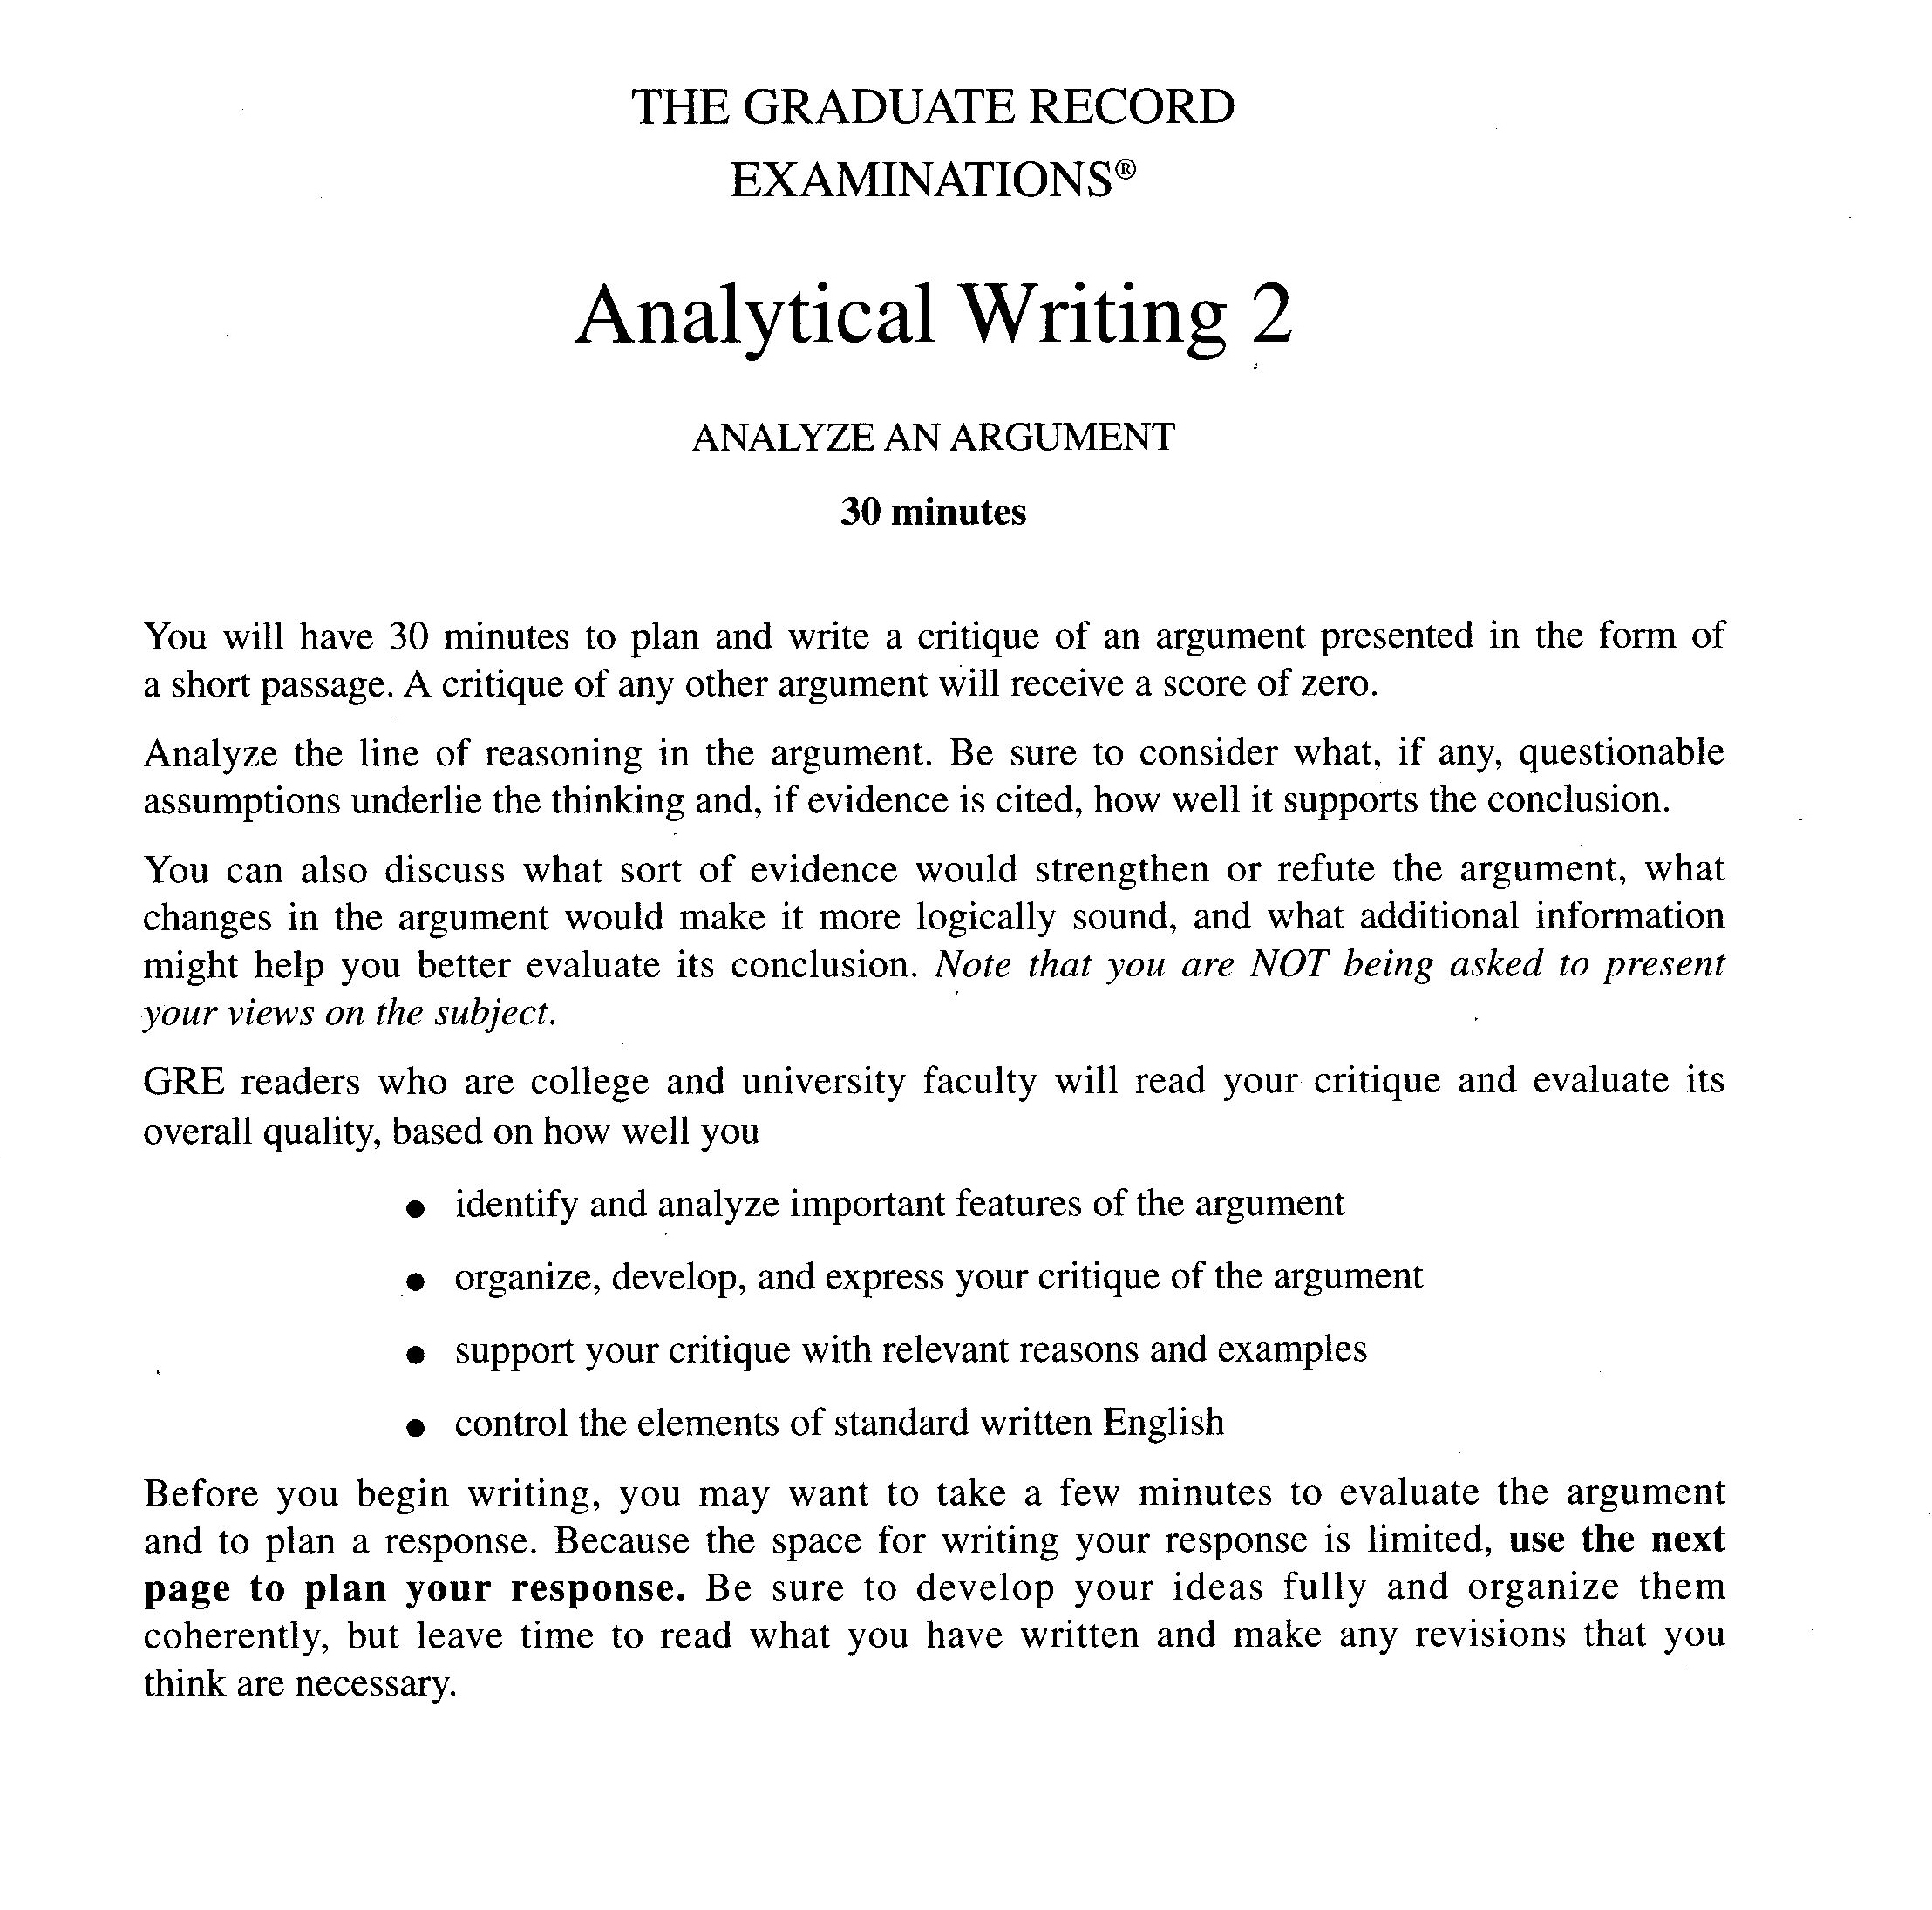 006 Analytical Writing Response Task Directions For Gre Samples Essay Example Sample Unique Essays Topics Practice Prompts Argument Full